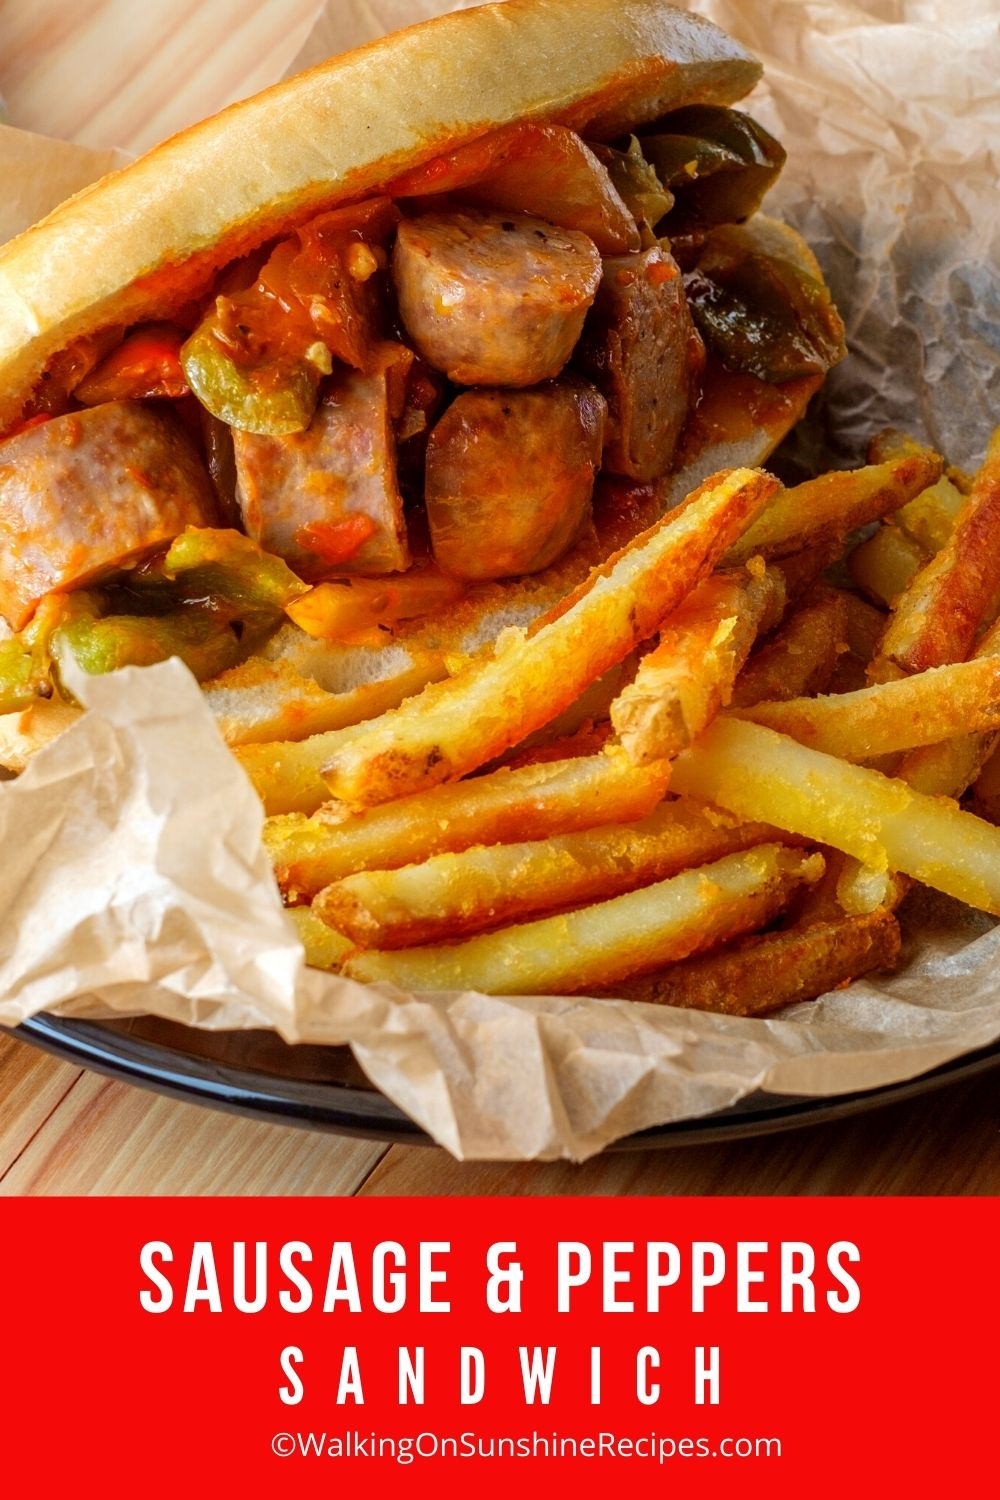 Sausage and Peppers Sandwich with French Fries.